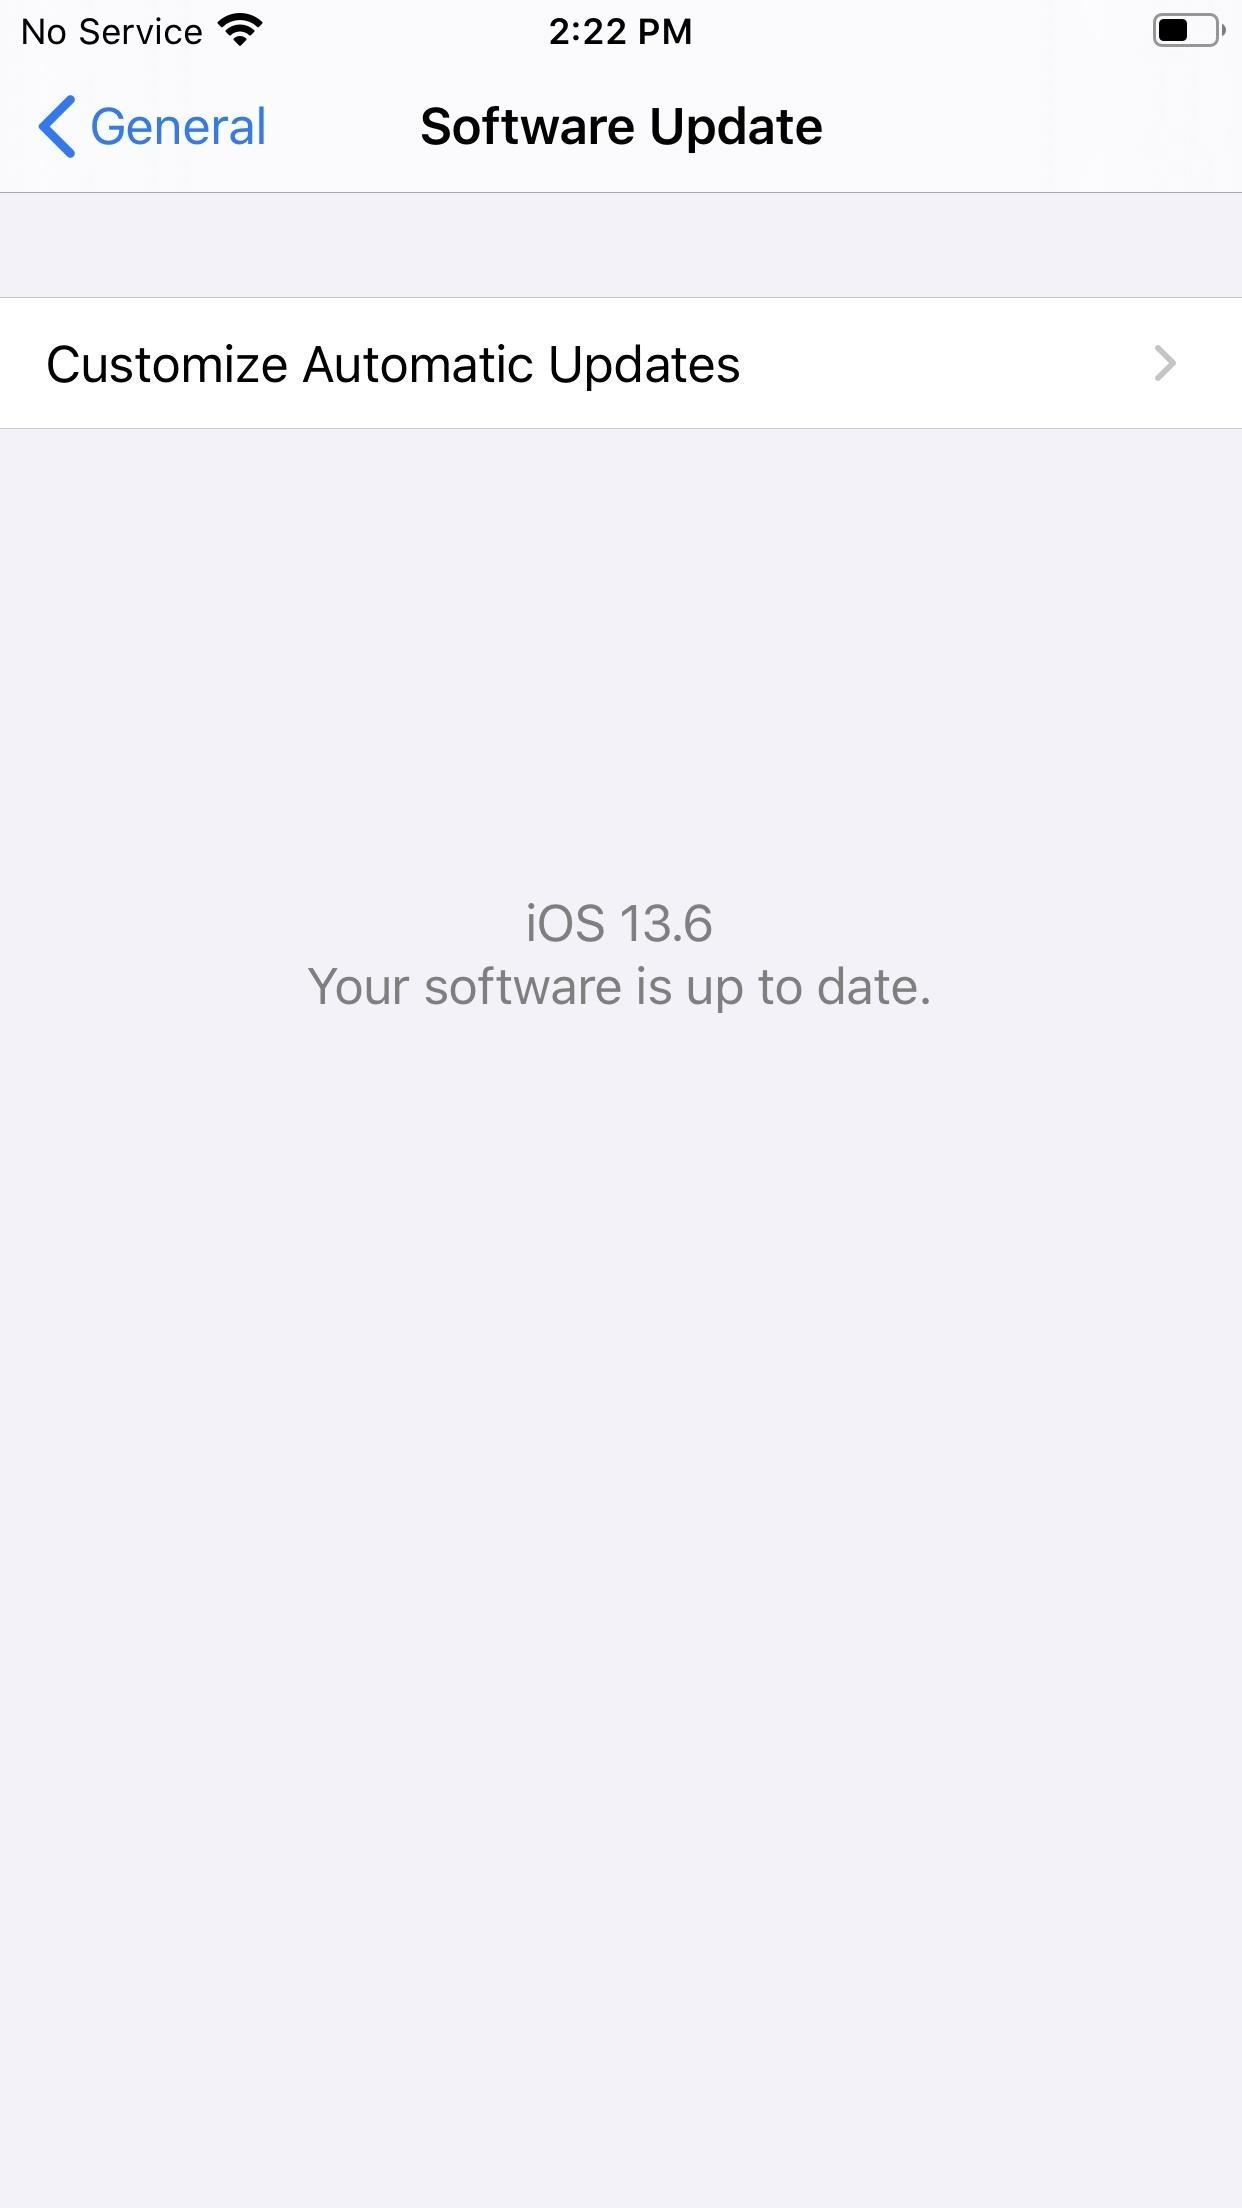 Apple Releases iOS 13.6 Public Beta 2 for iPhone, Includes Option to Automatically Download New Updates